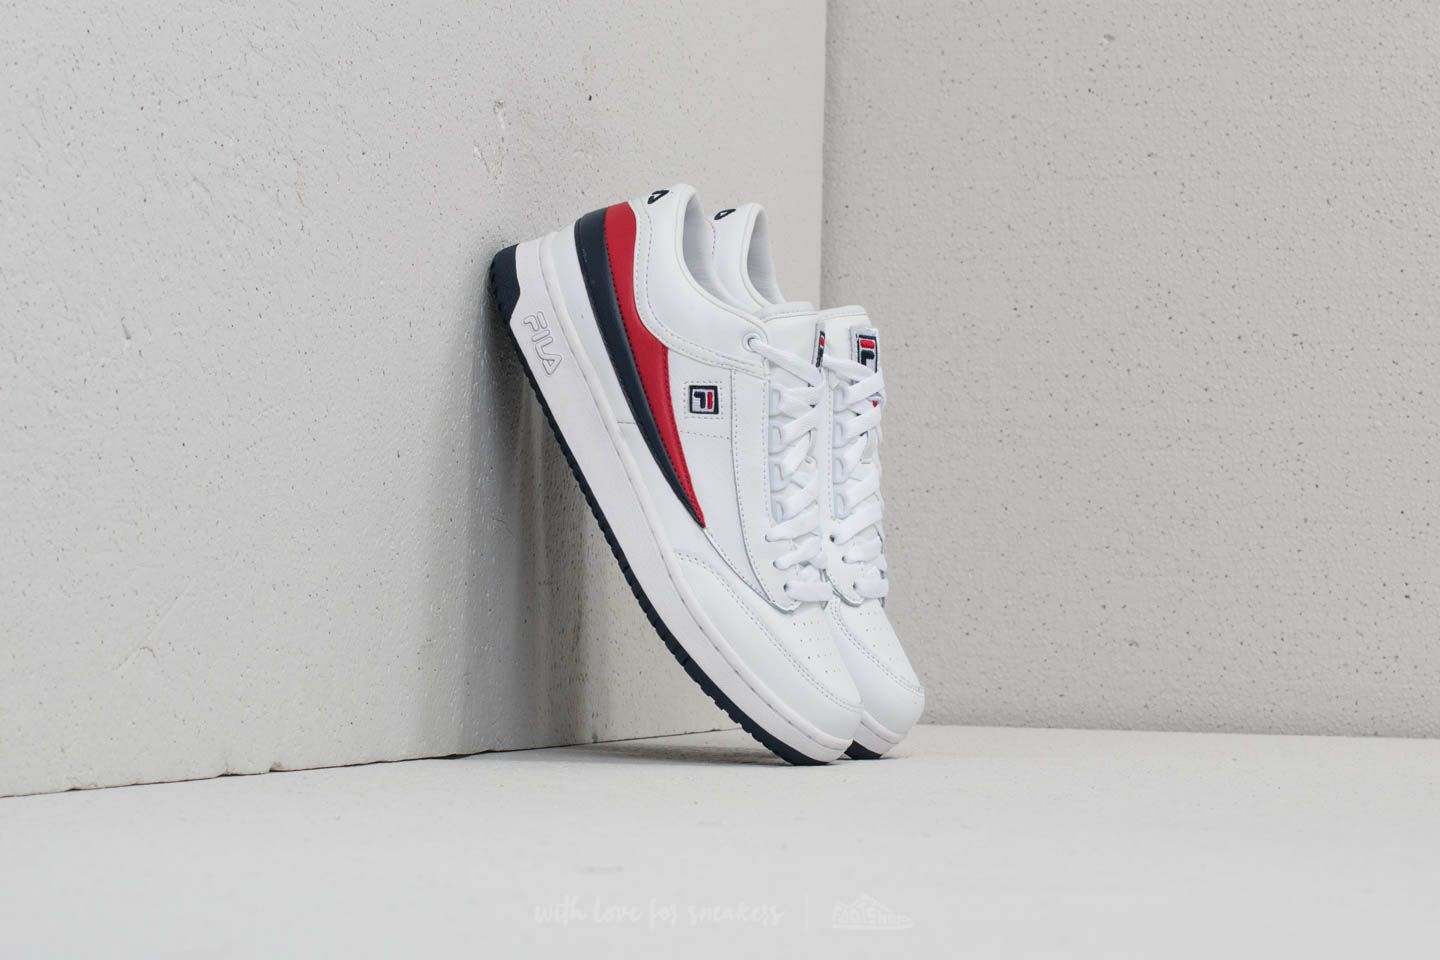 Fila T-1 MID White/ Fila Navy/ Fila Red